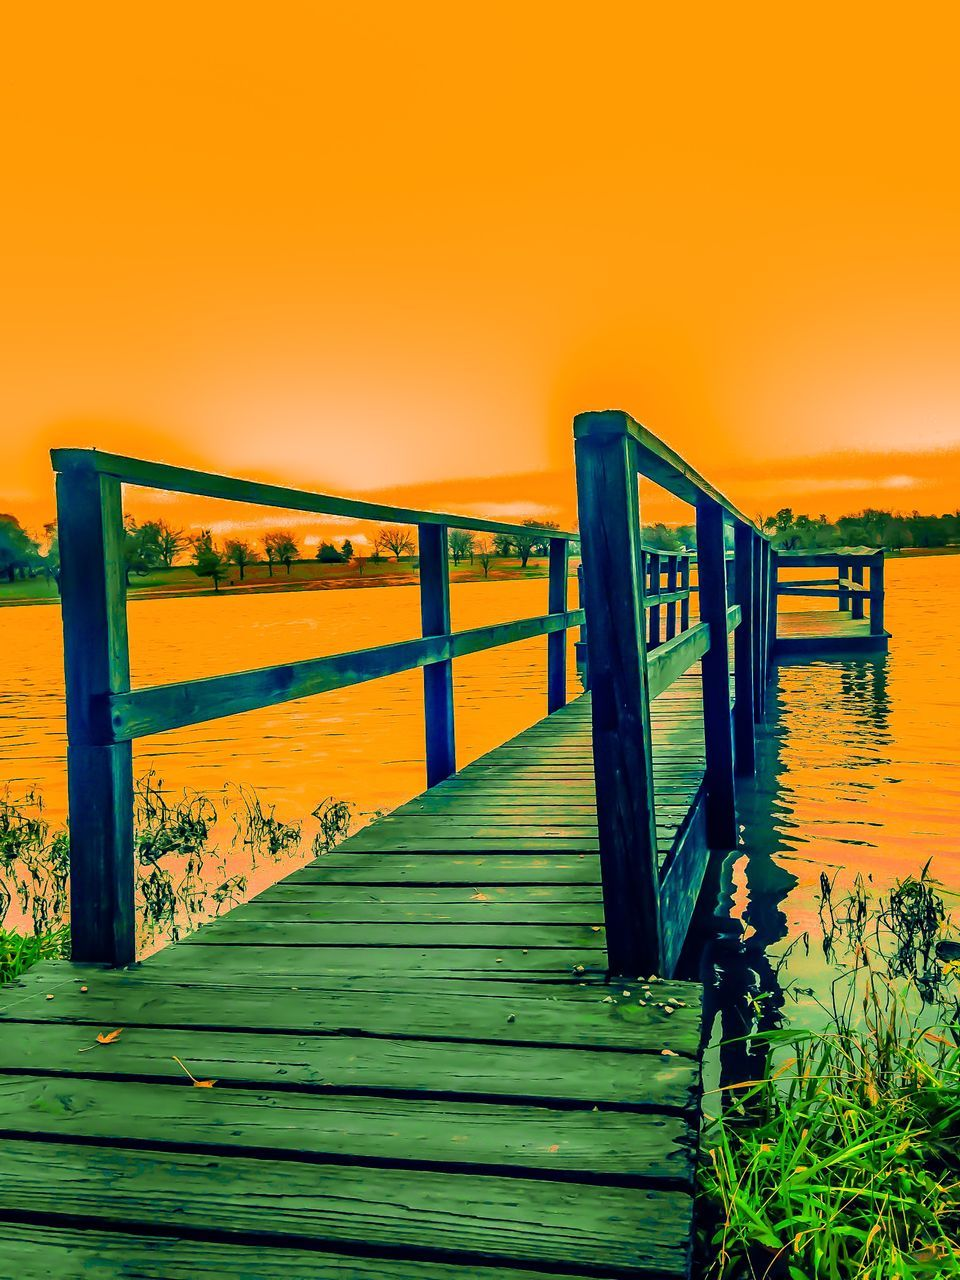 nature, sunset, tranquil scene, outdoors, scenics, beauty in nature, tranquility, no people, water, wood - material, built structure, bridge - man made structure, grass, wood paneling, sunlight, sky, wooden post, day, architecture, sea, clear sky